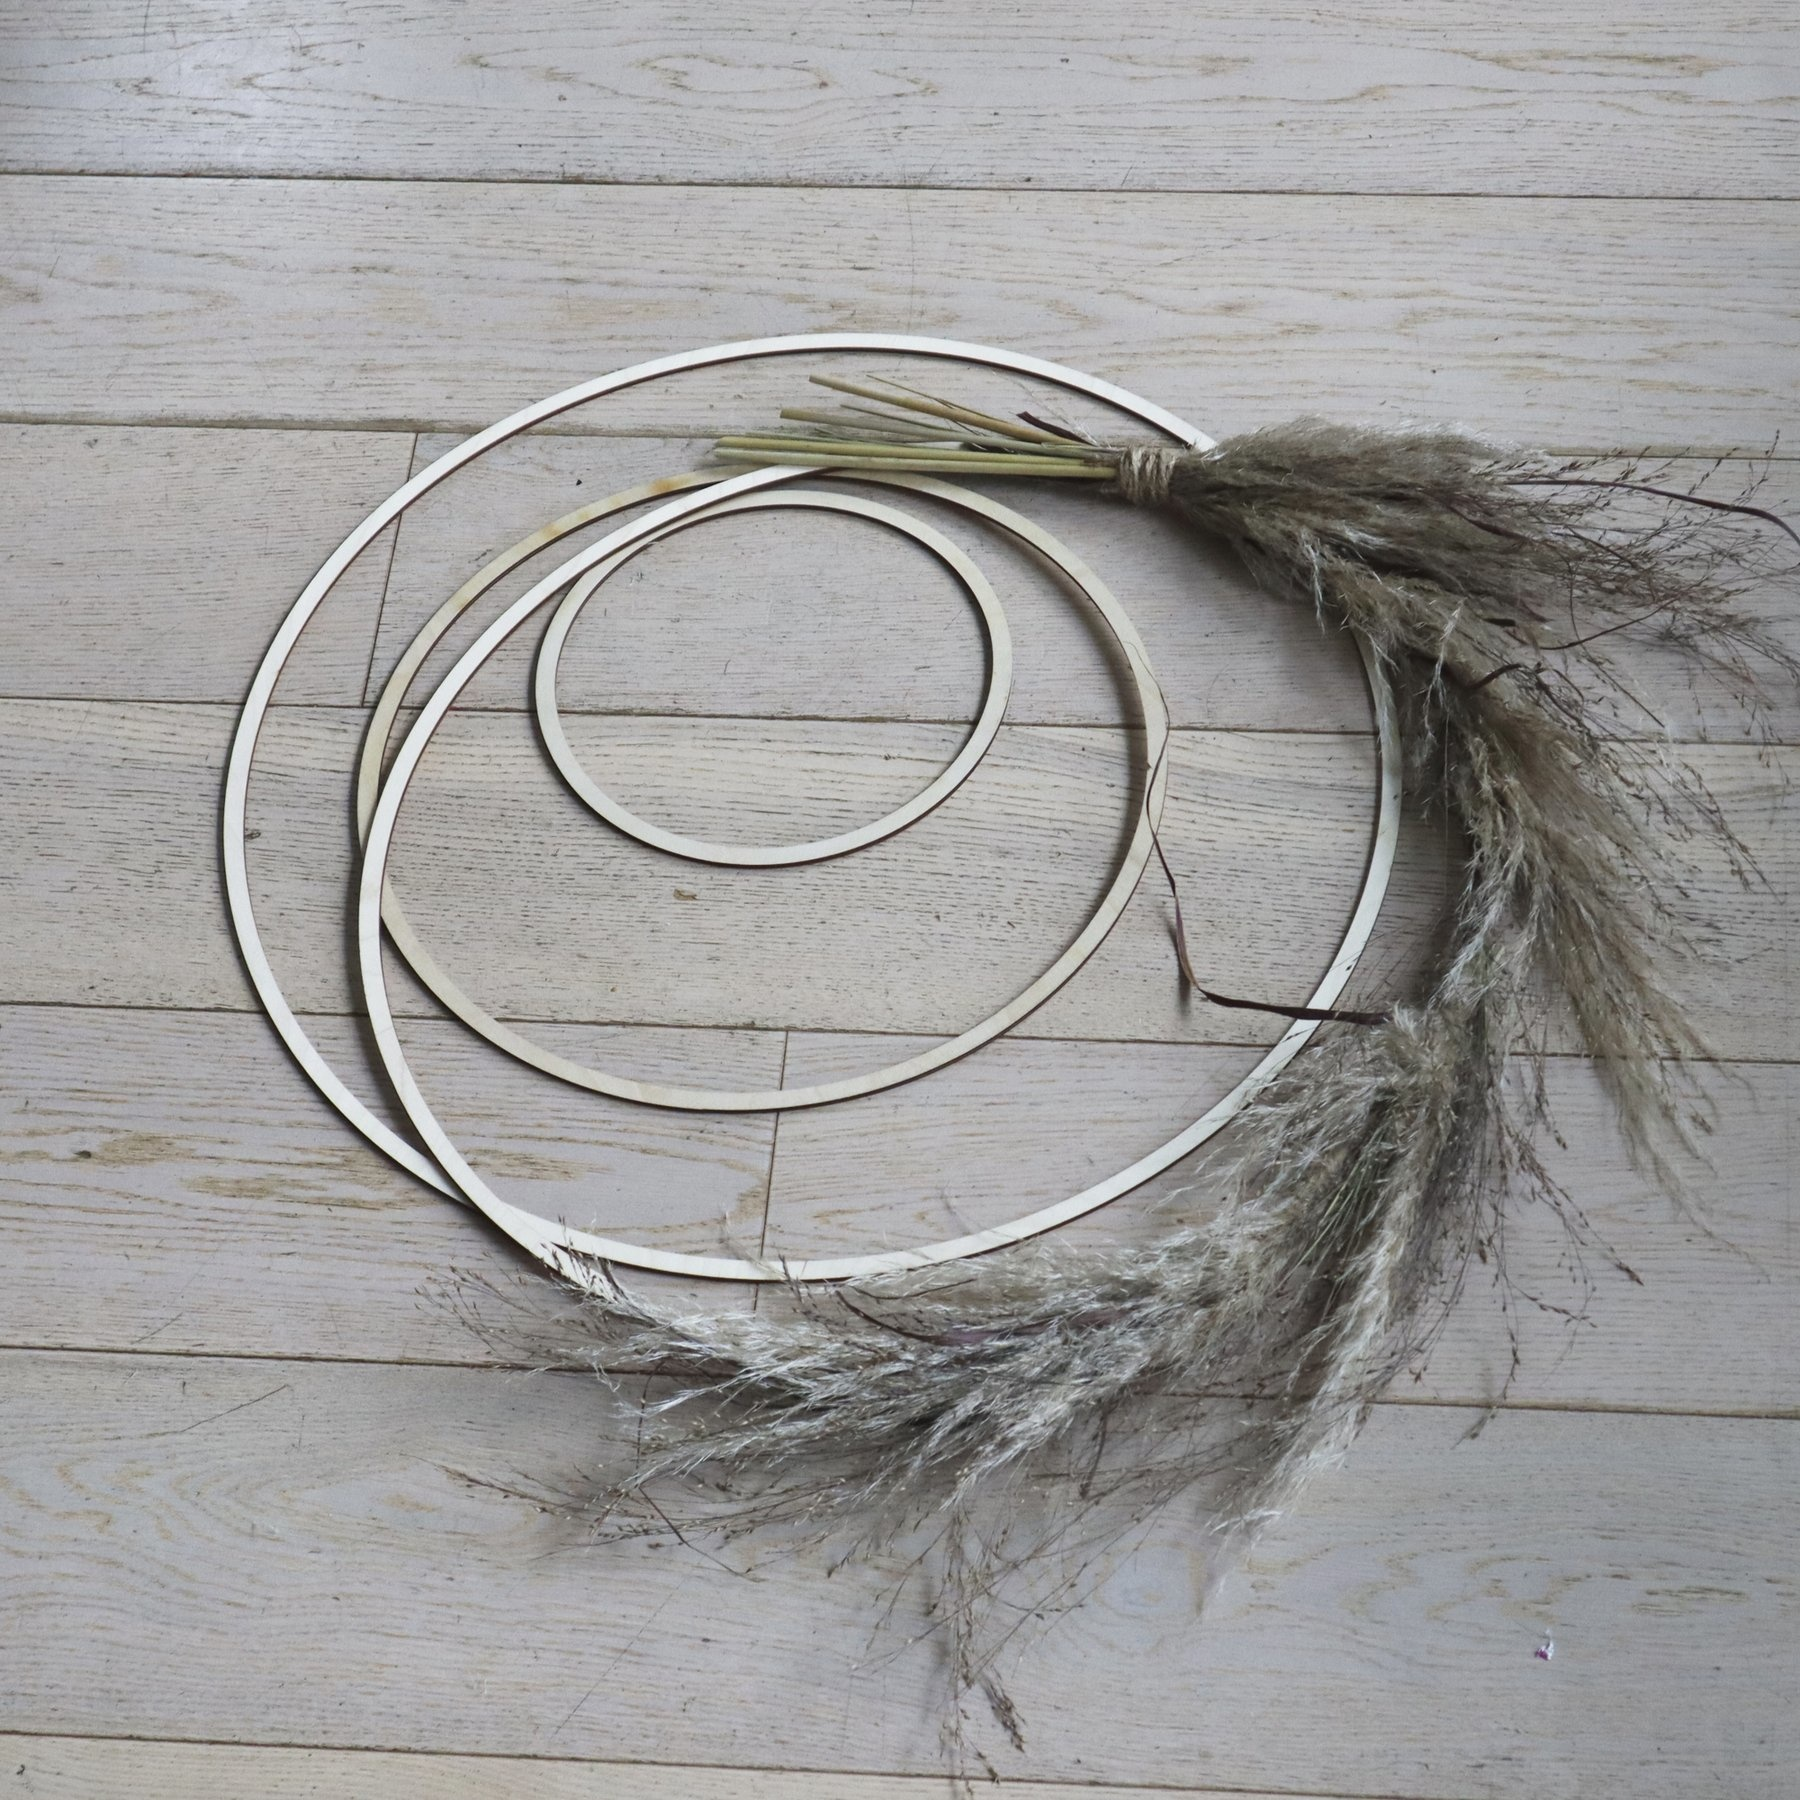 Wreath ring made of birch wood in various sizes